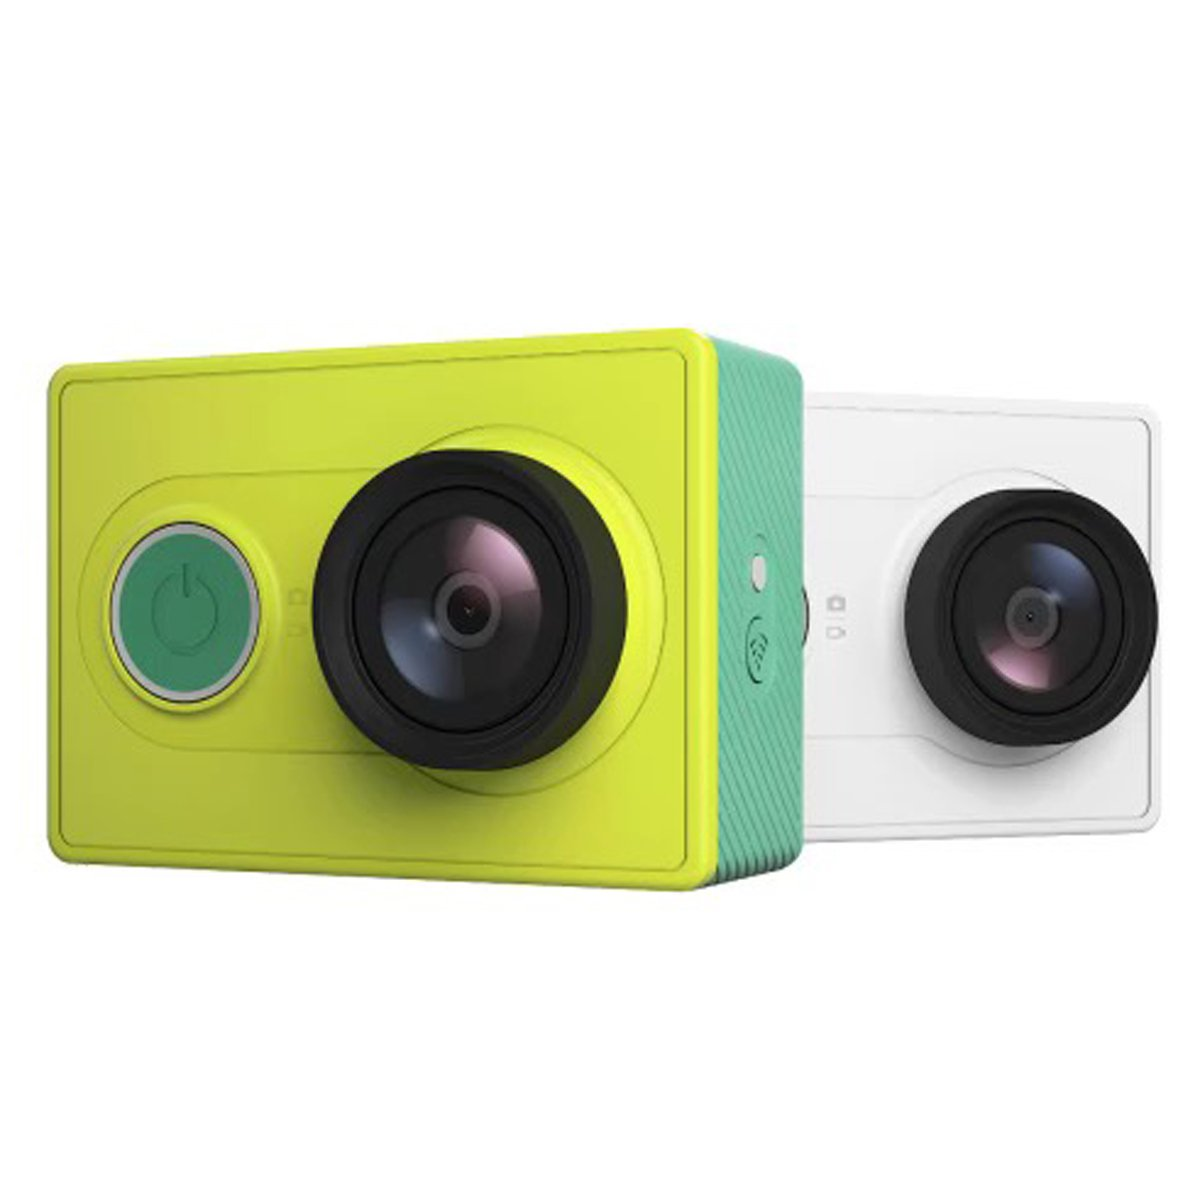 Xiaomi Yi Action Camera WiFi Bluetooth 4.0 16.0MP 1080P image